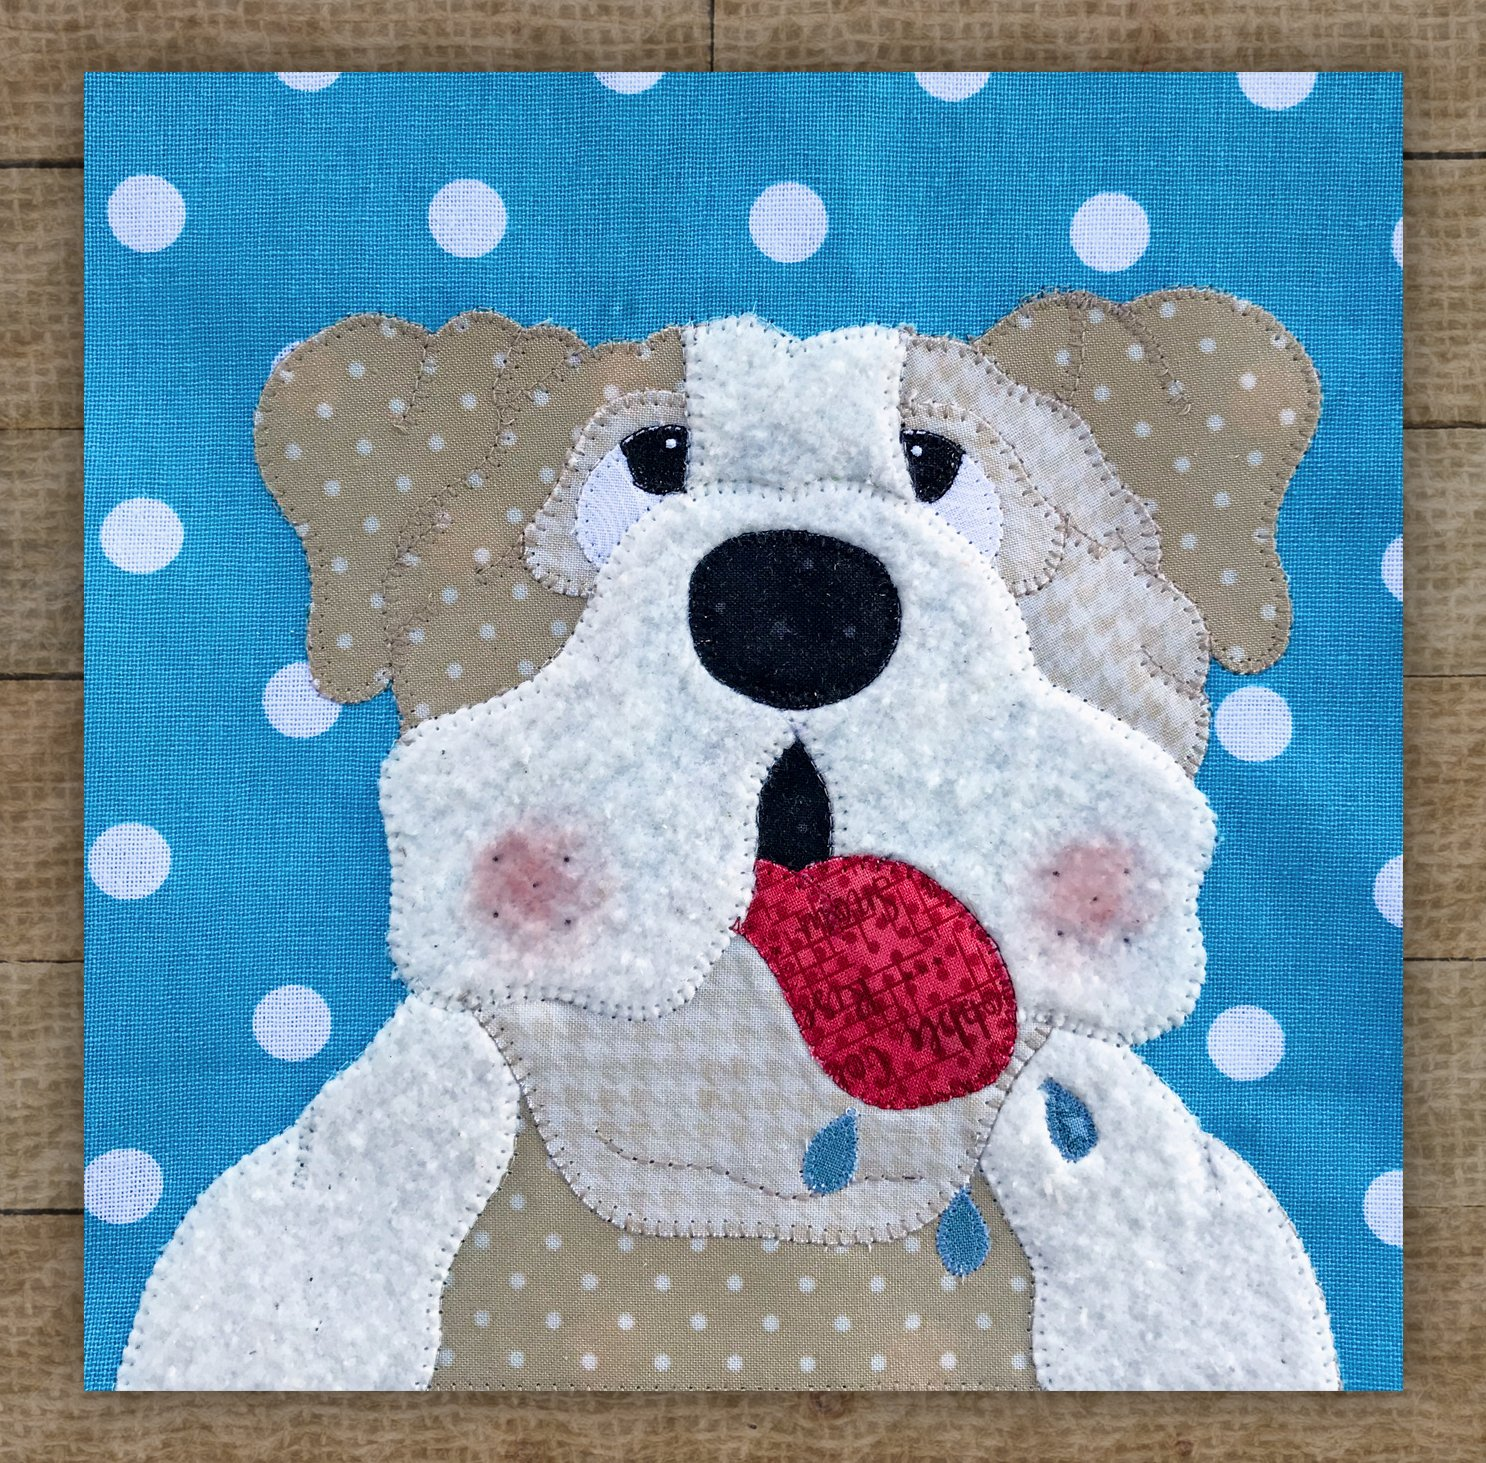 Bulldog Precut Fused Applique Kit